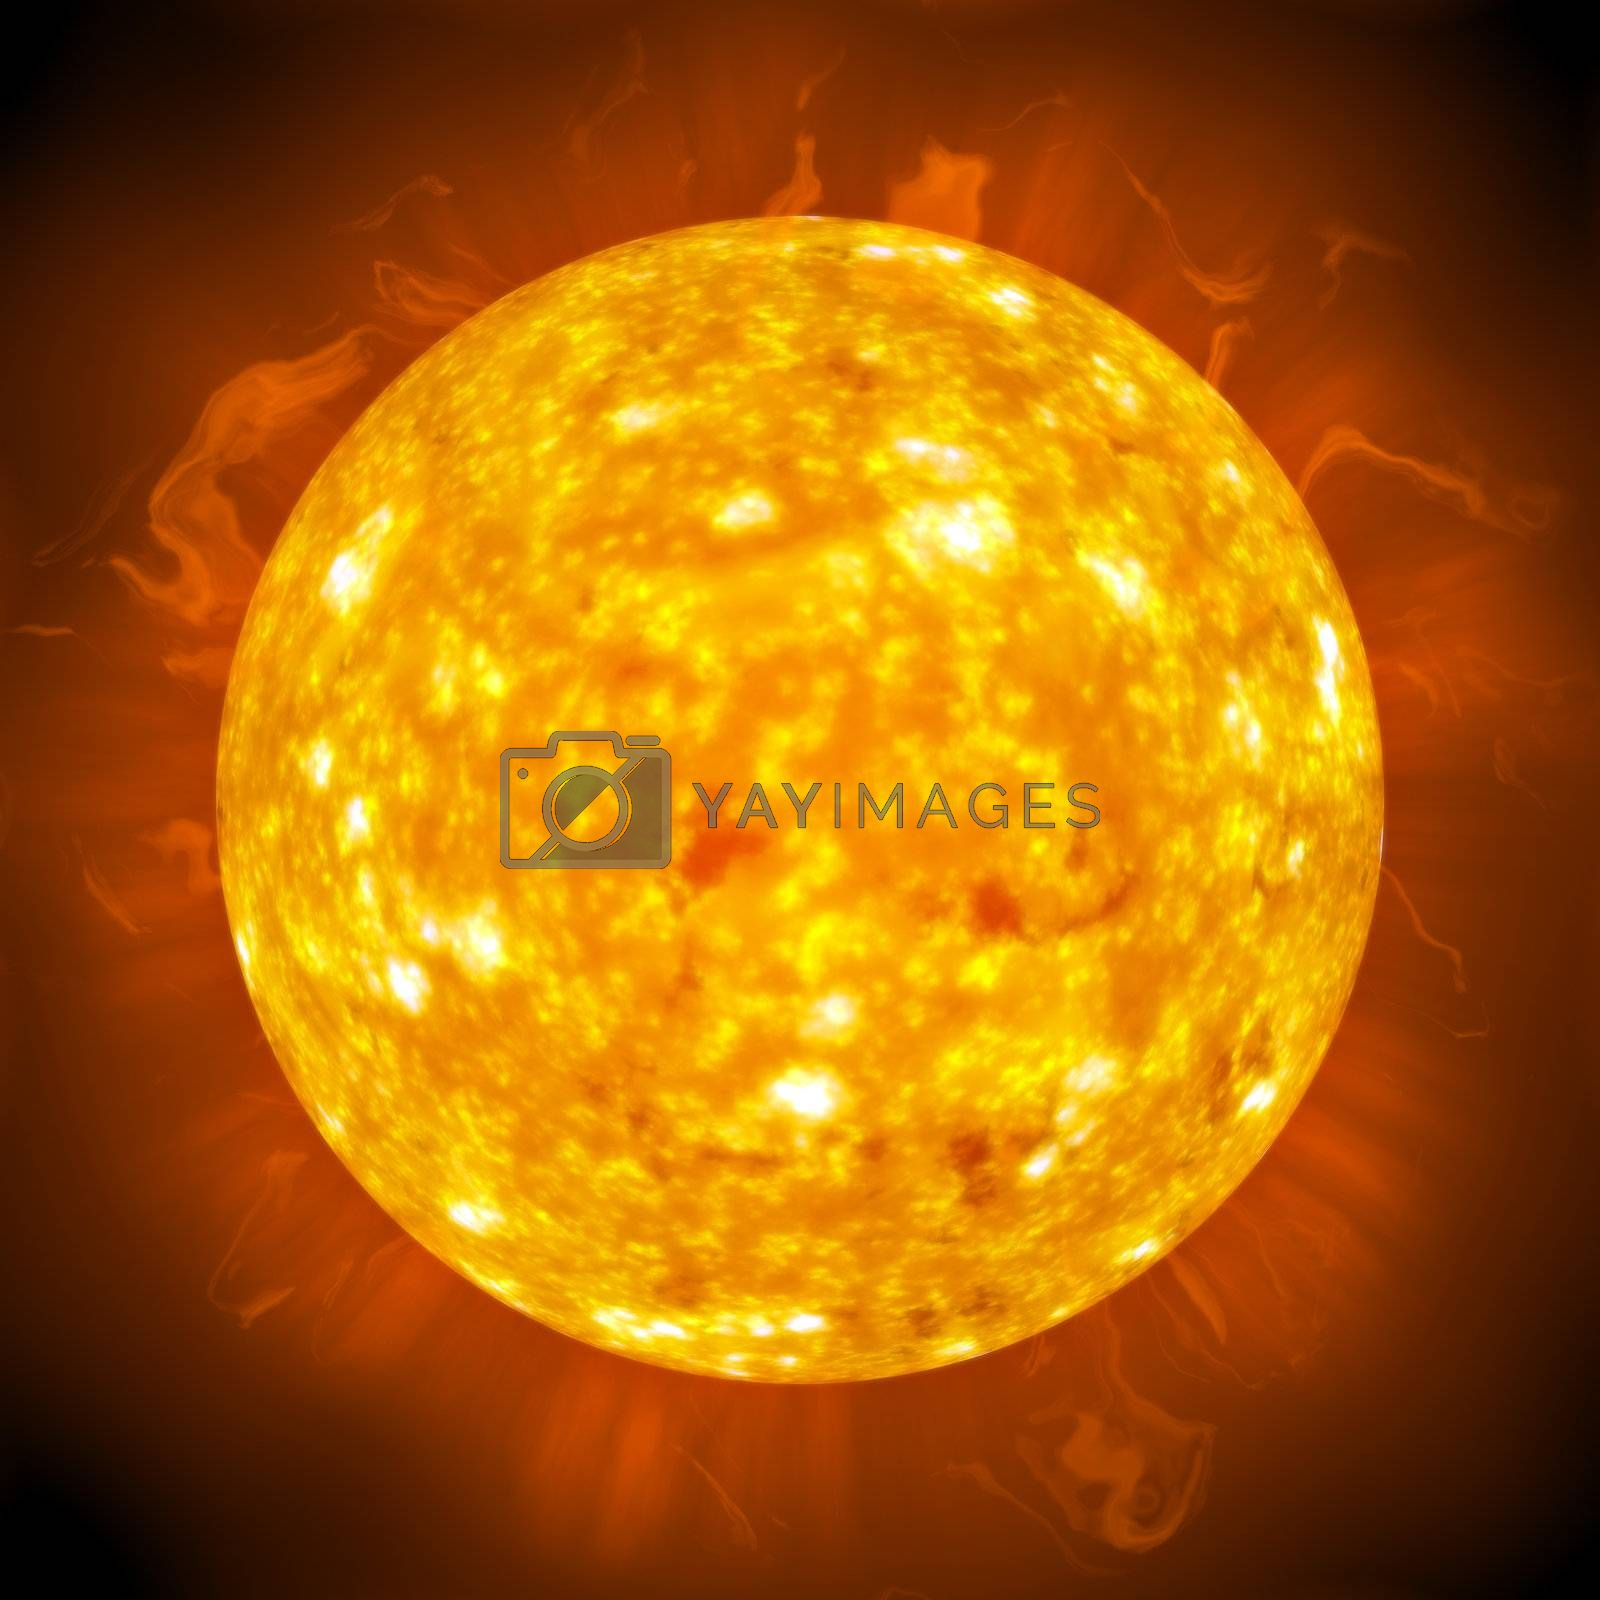 Burning ball of fire.  A great 3D illustration of the sun.